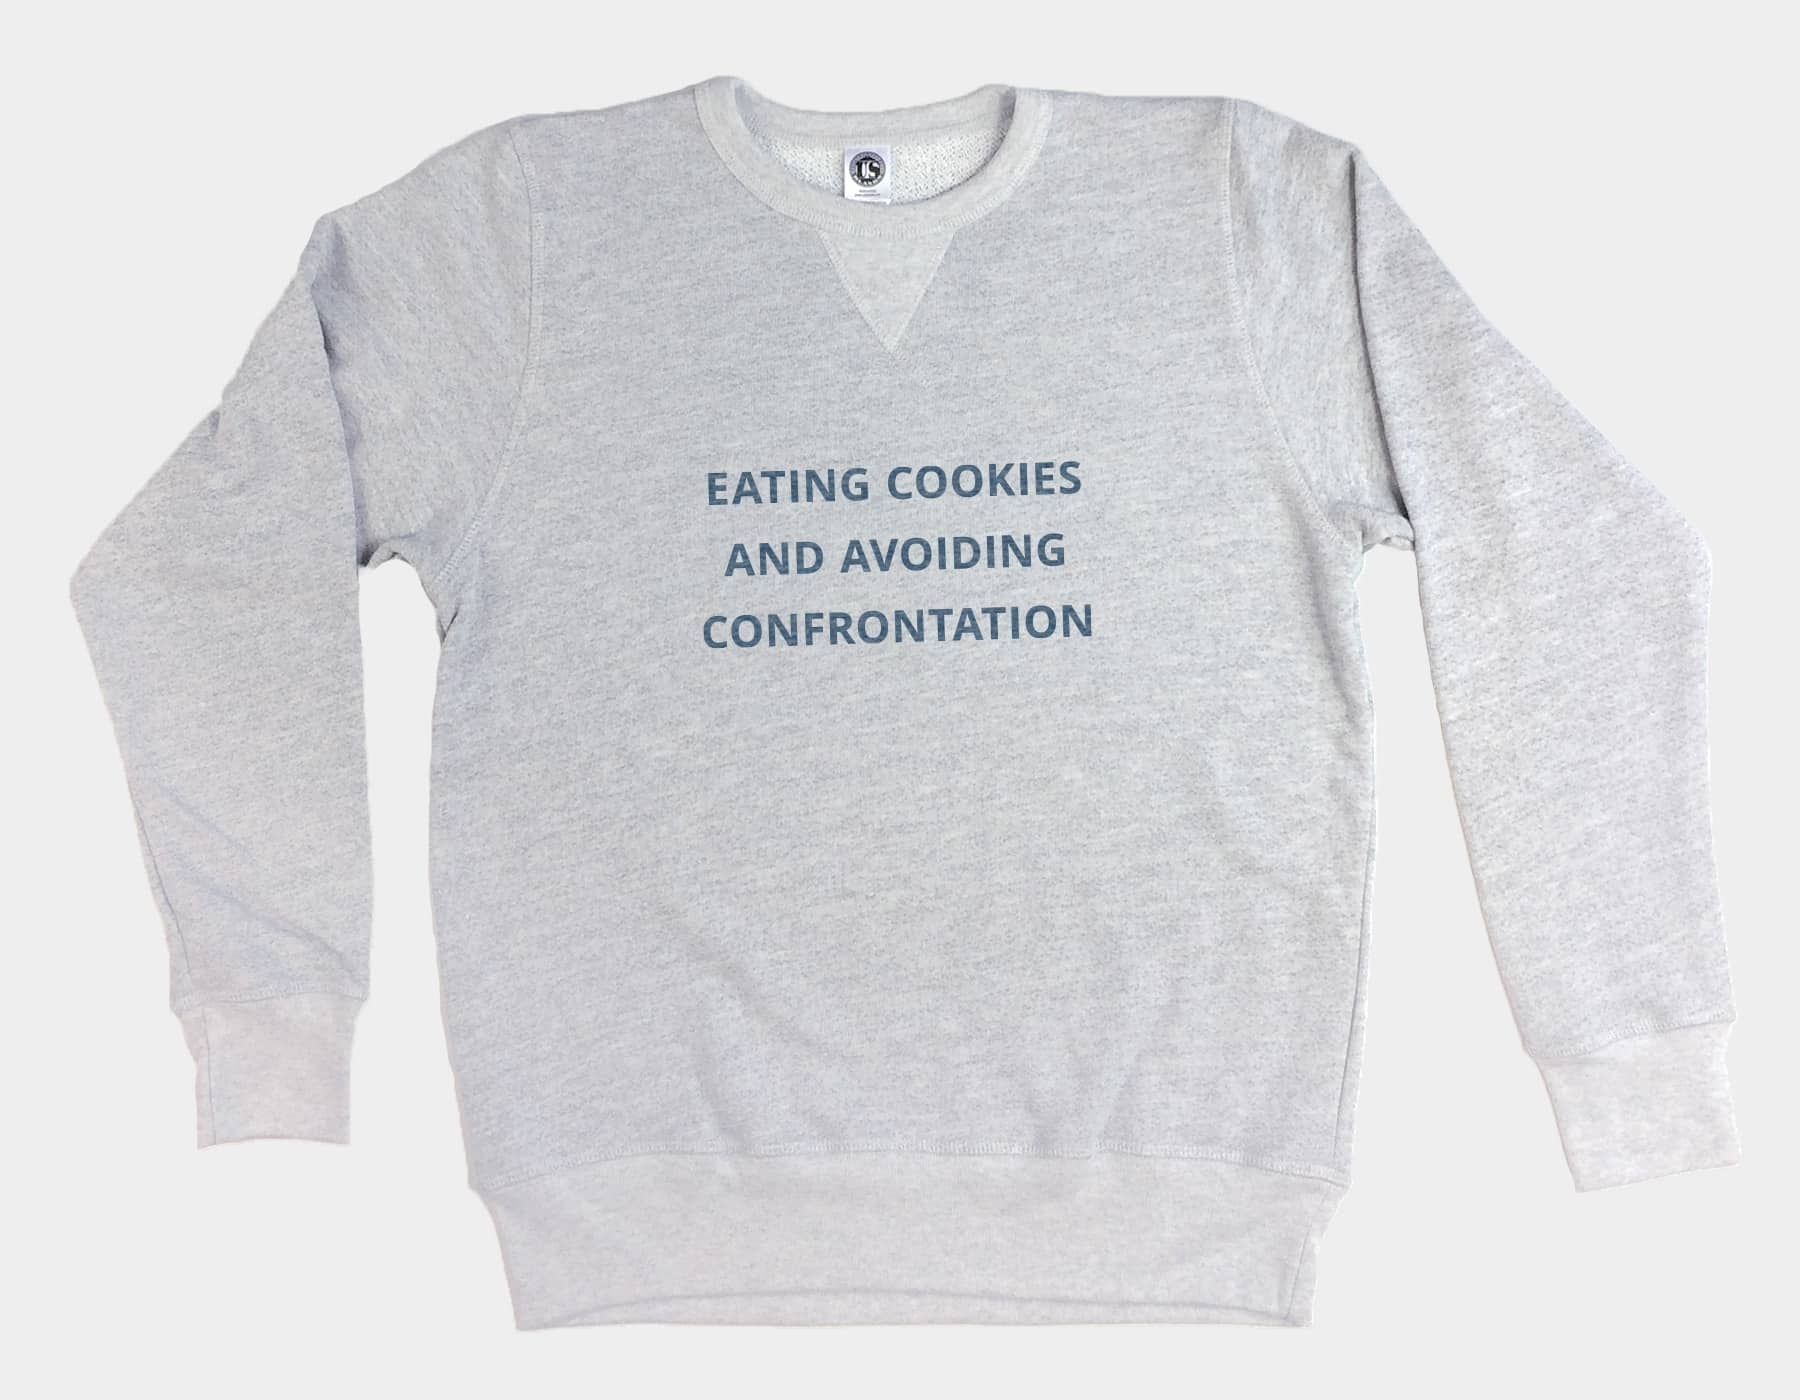 Cookies & Confrontation Pullover Sweatshirt Heather Grey